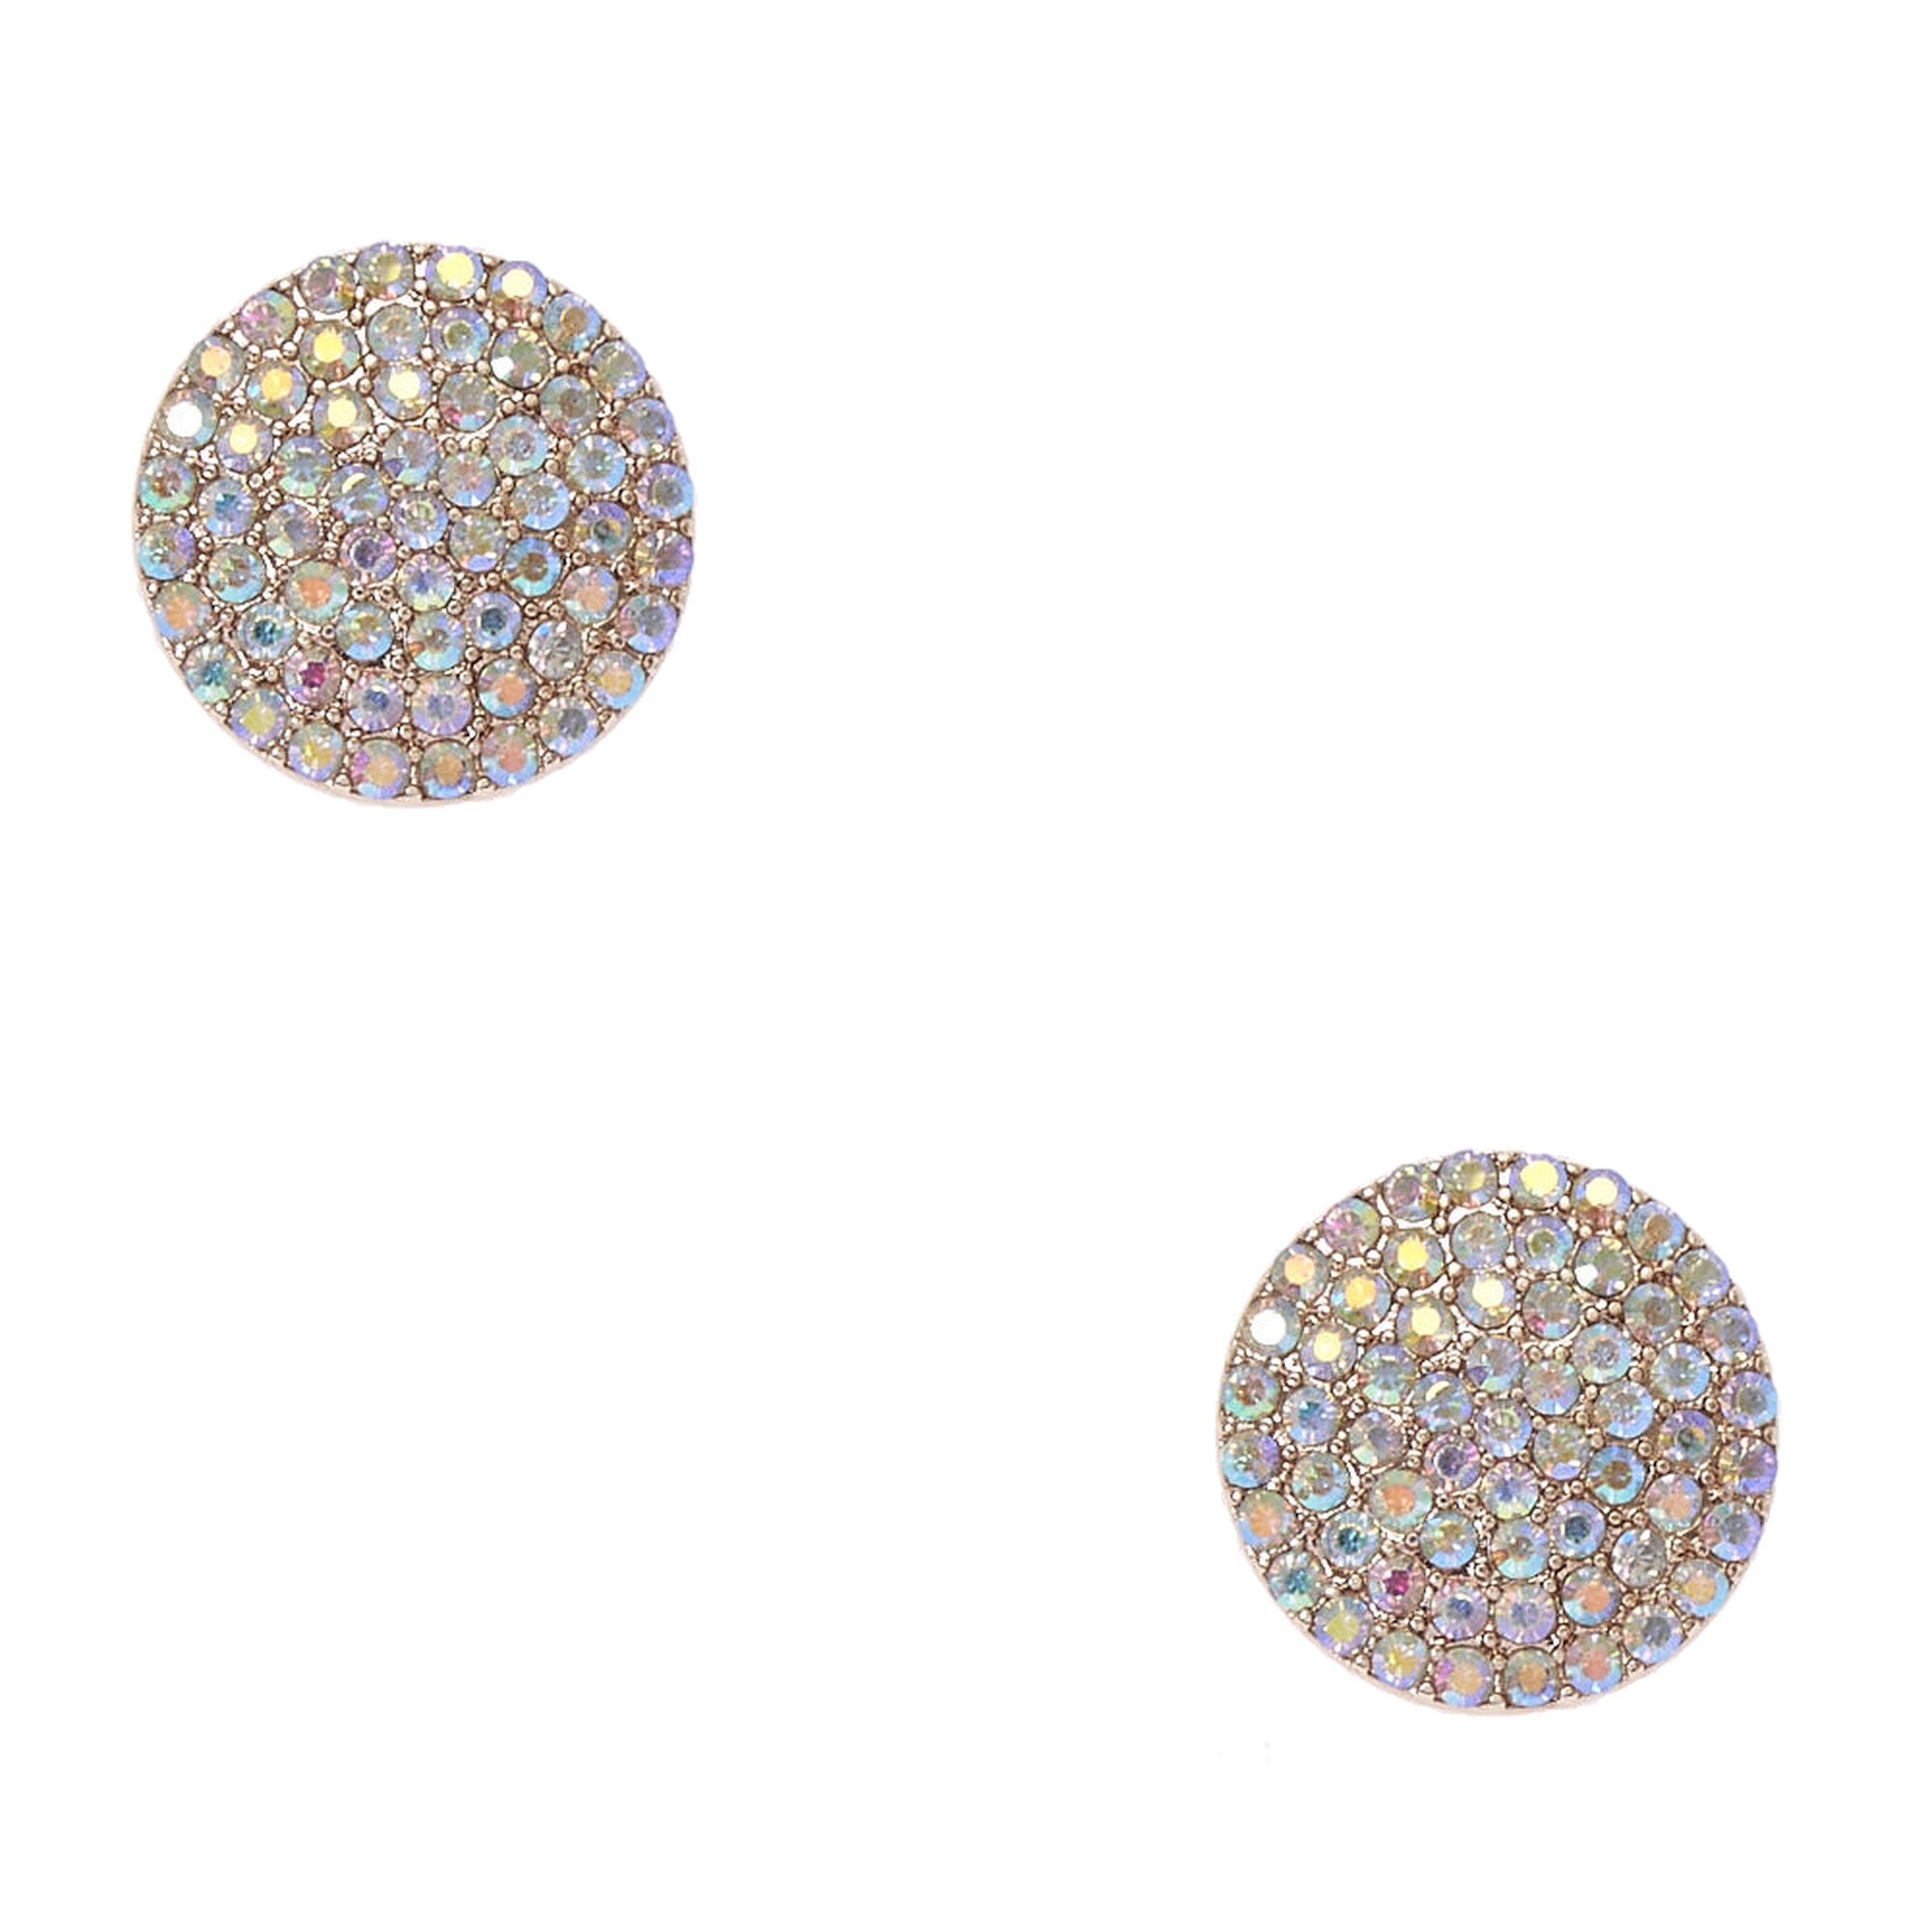 cubic context earrings rose stud silver large gold zirconia p